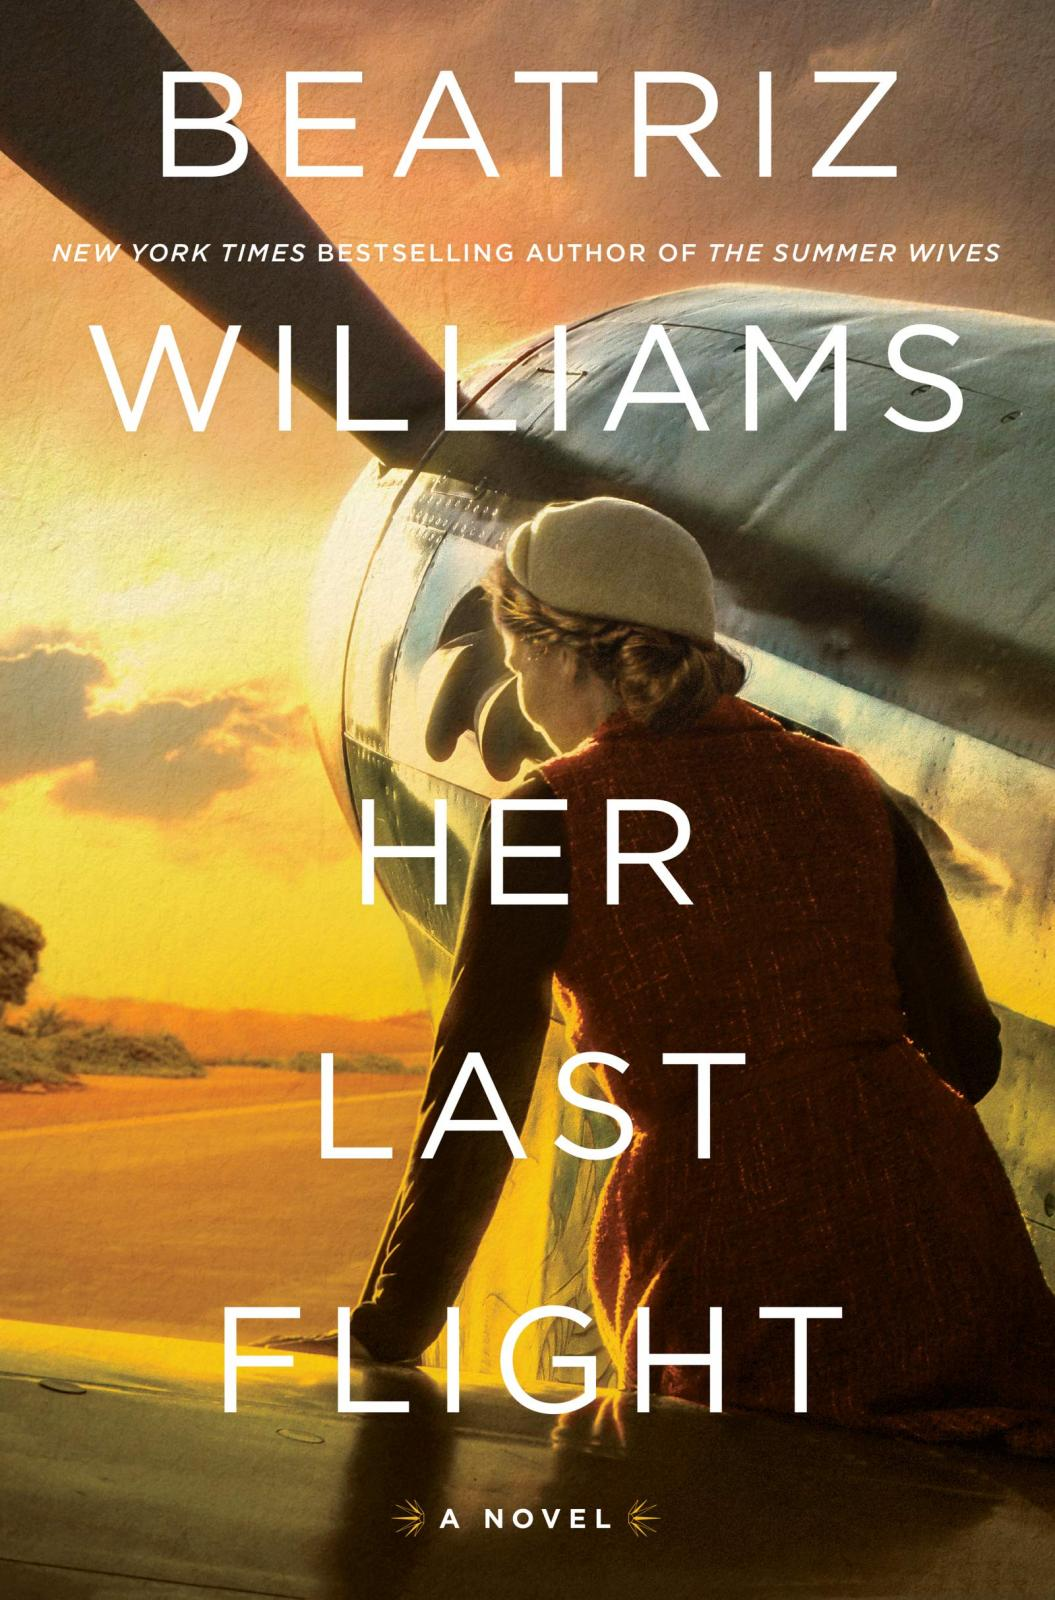 Her last flight : a novel